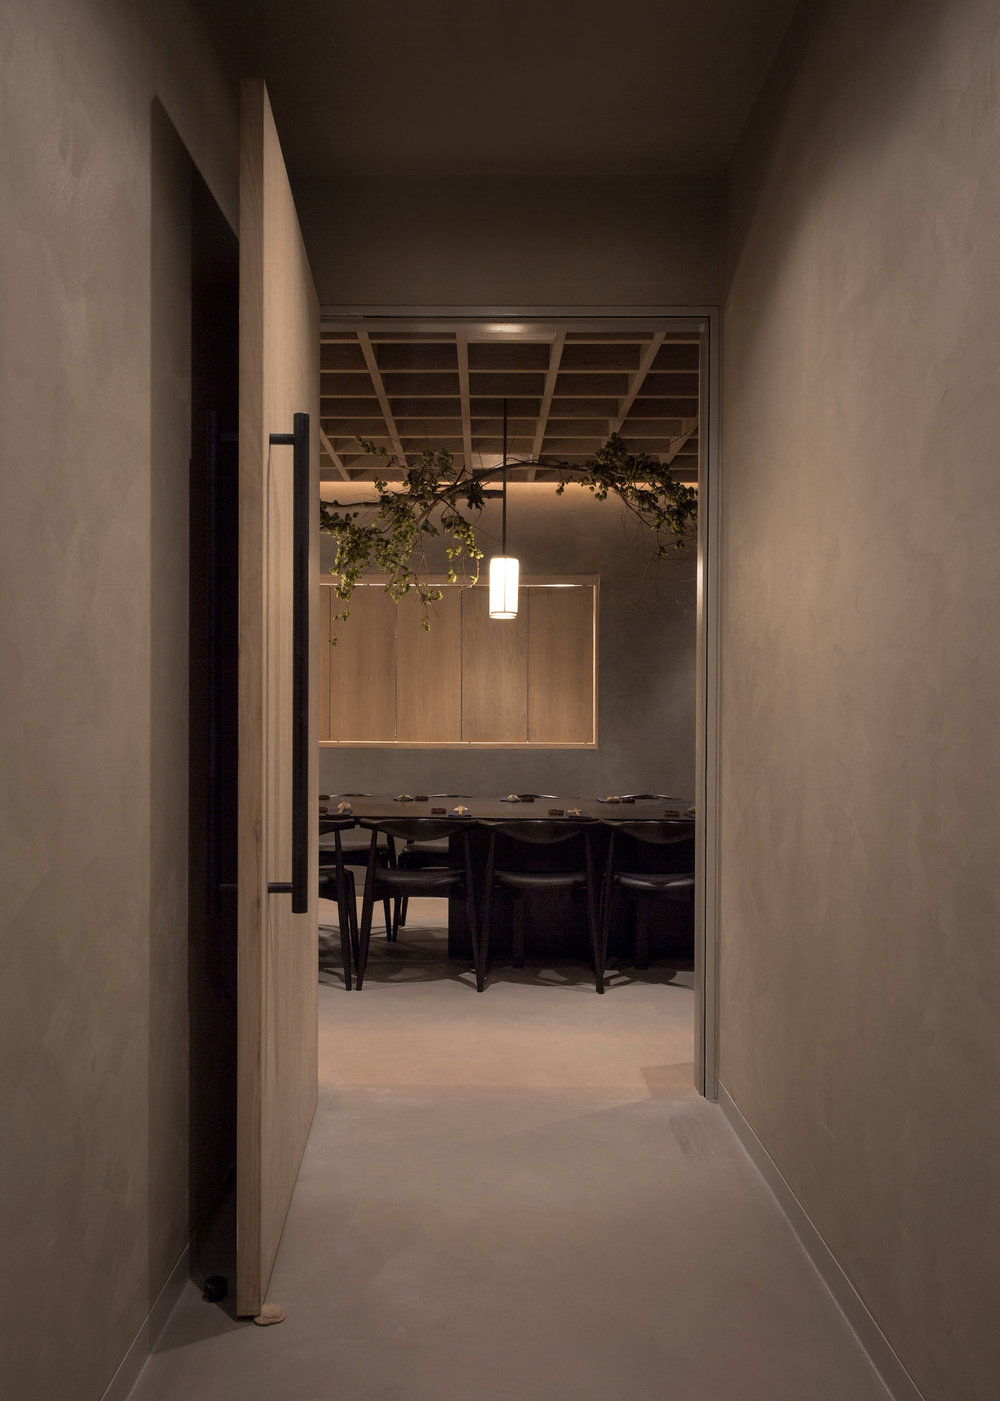 Sticks n Sushi designed by Norm Architects